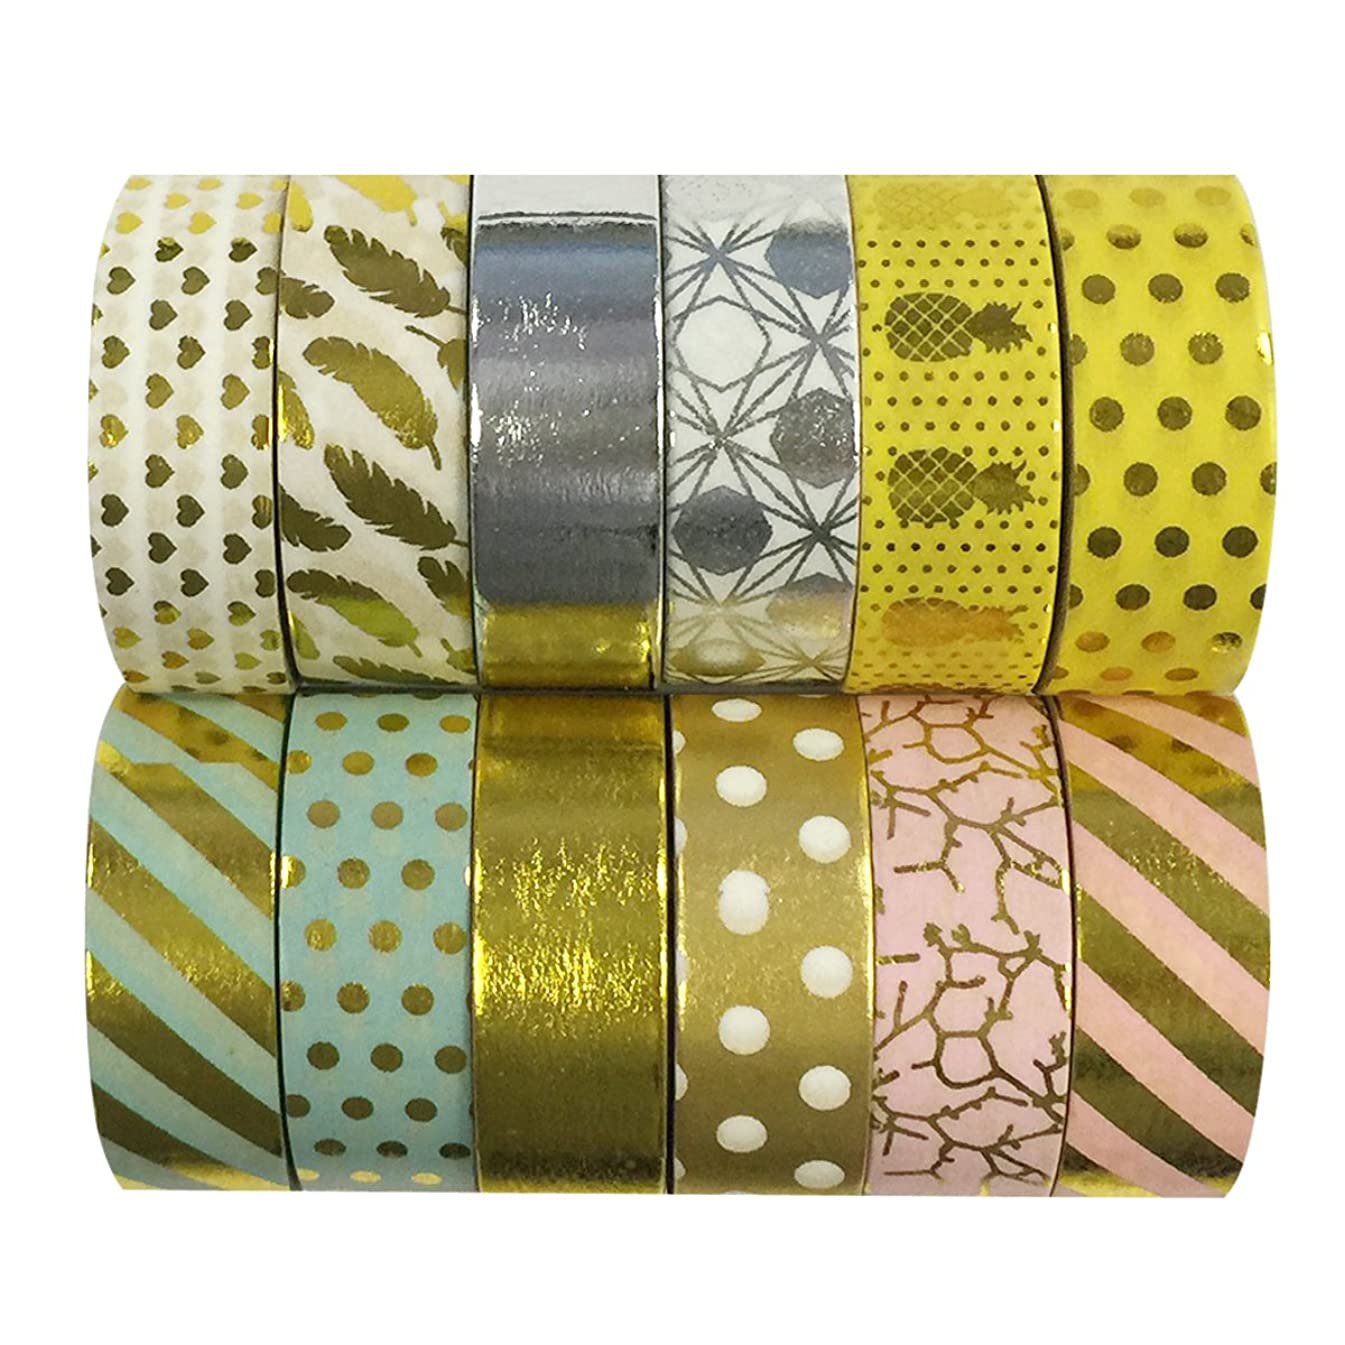 allydrew Washi Decorative Masking Tapes, Set of 12, ADSET59